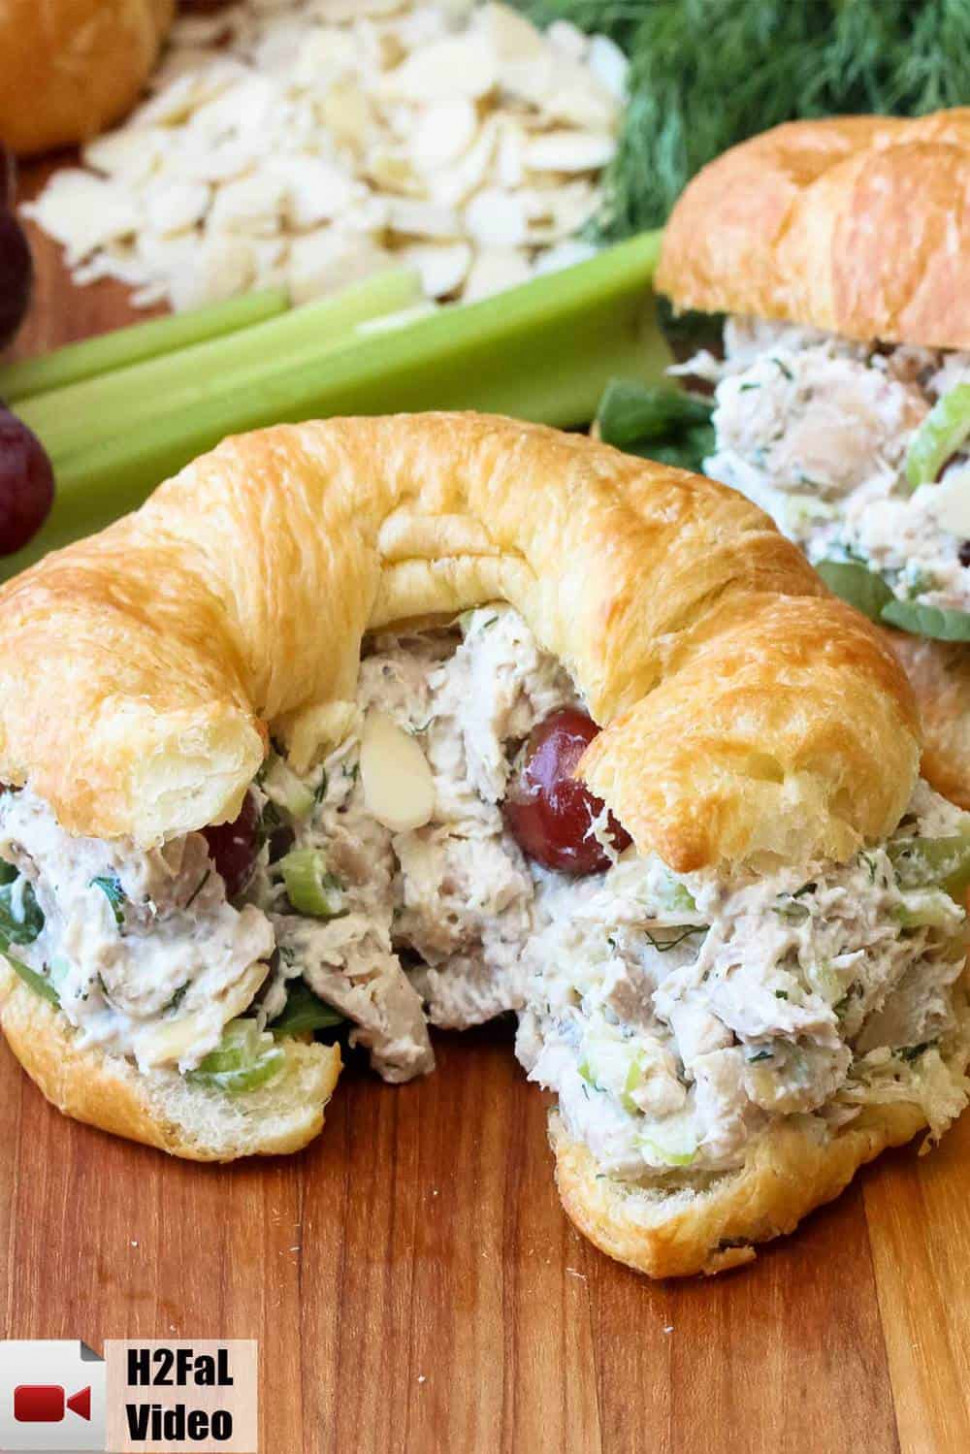 Best-Ever Chicken Salad - recipes using canned chicken